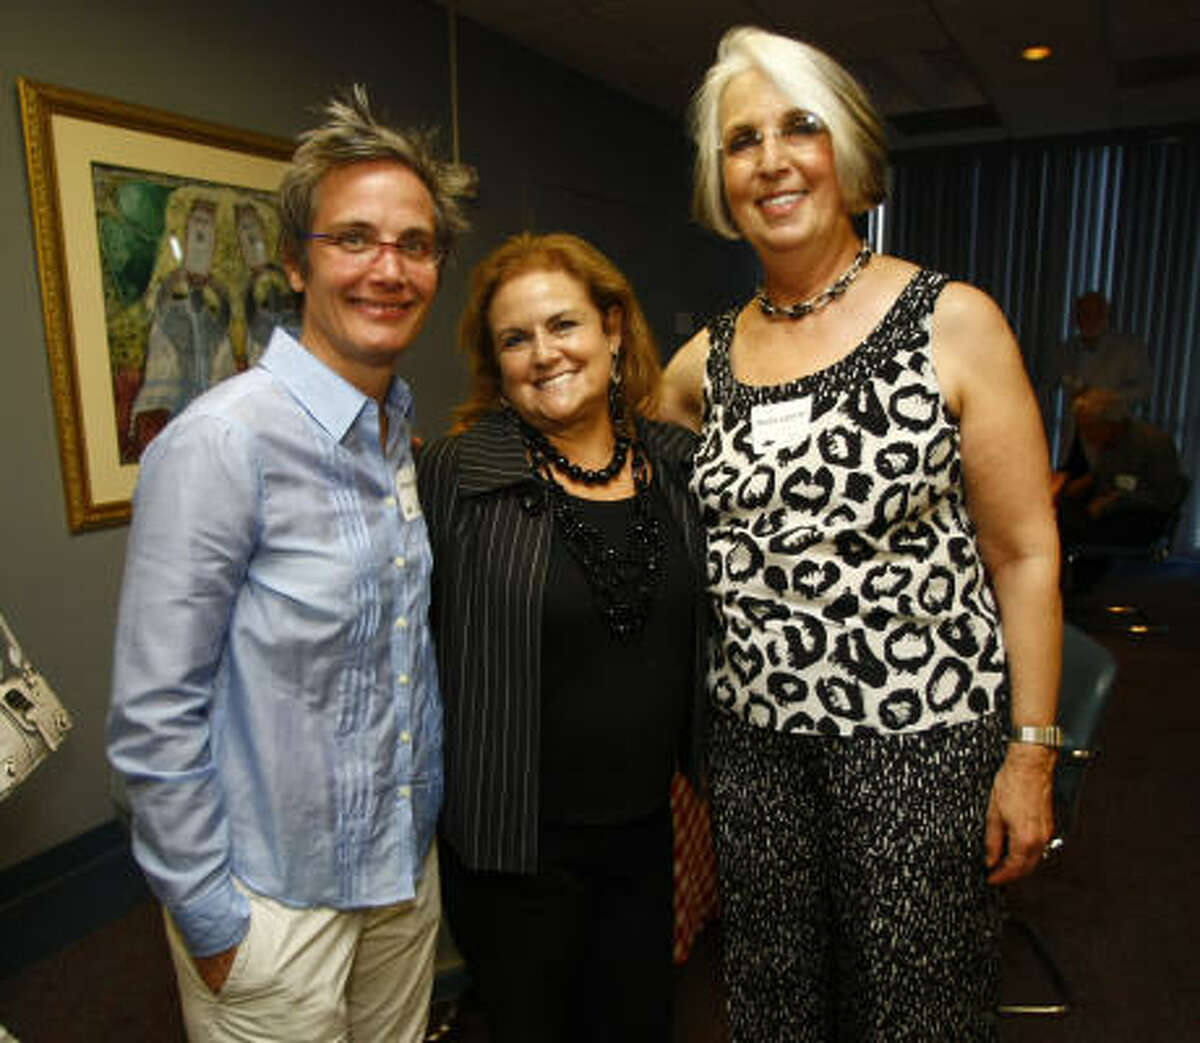 Monica Pope, co-chair Barbara Marcus, and chair Maida Asofsky at Dialogues 2010 at the Jewish Community Center Houston.